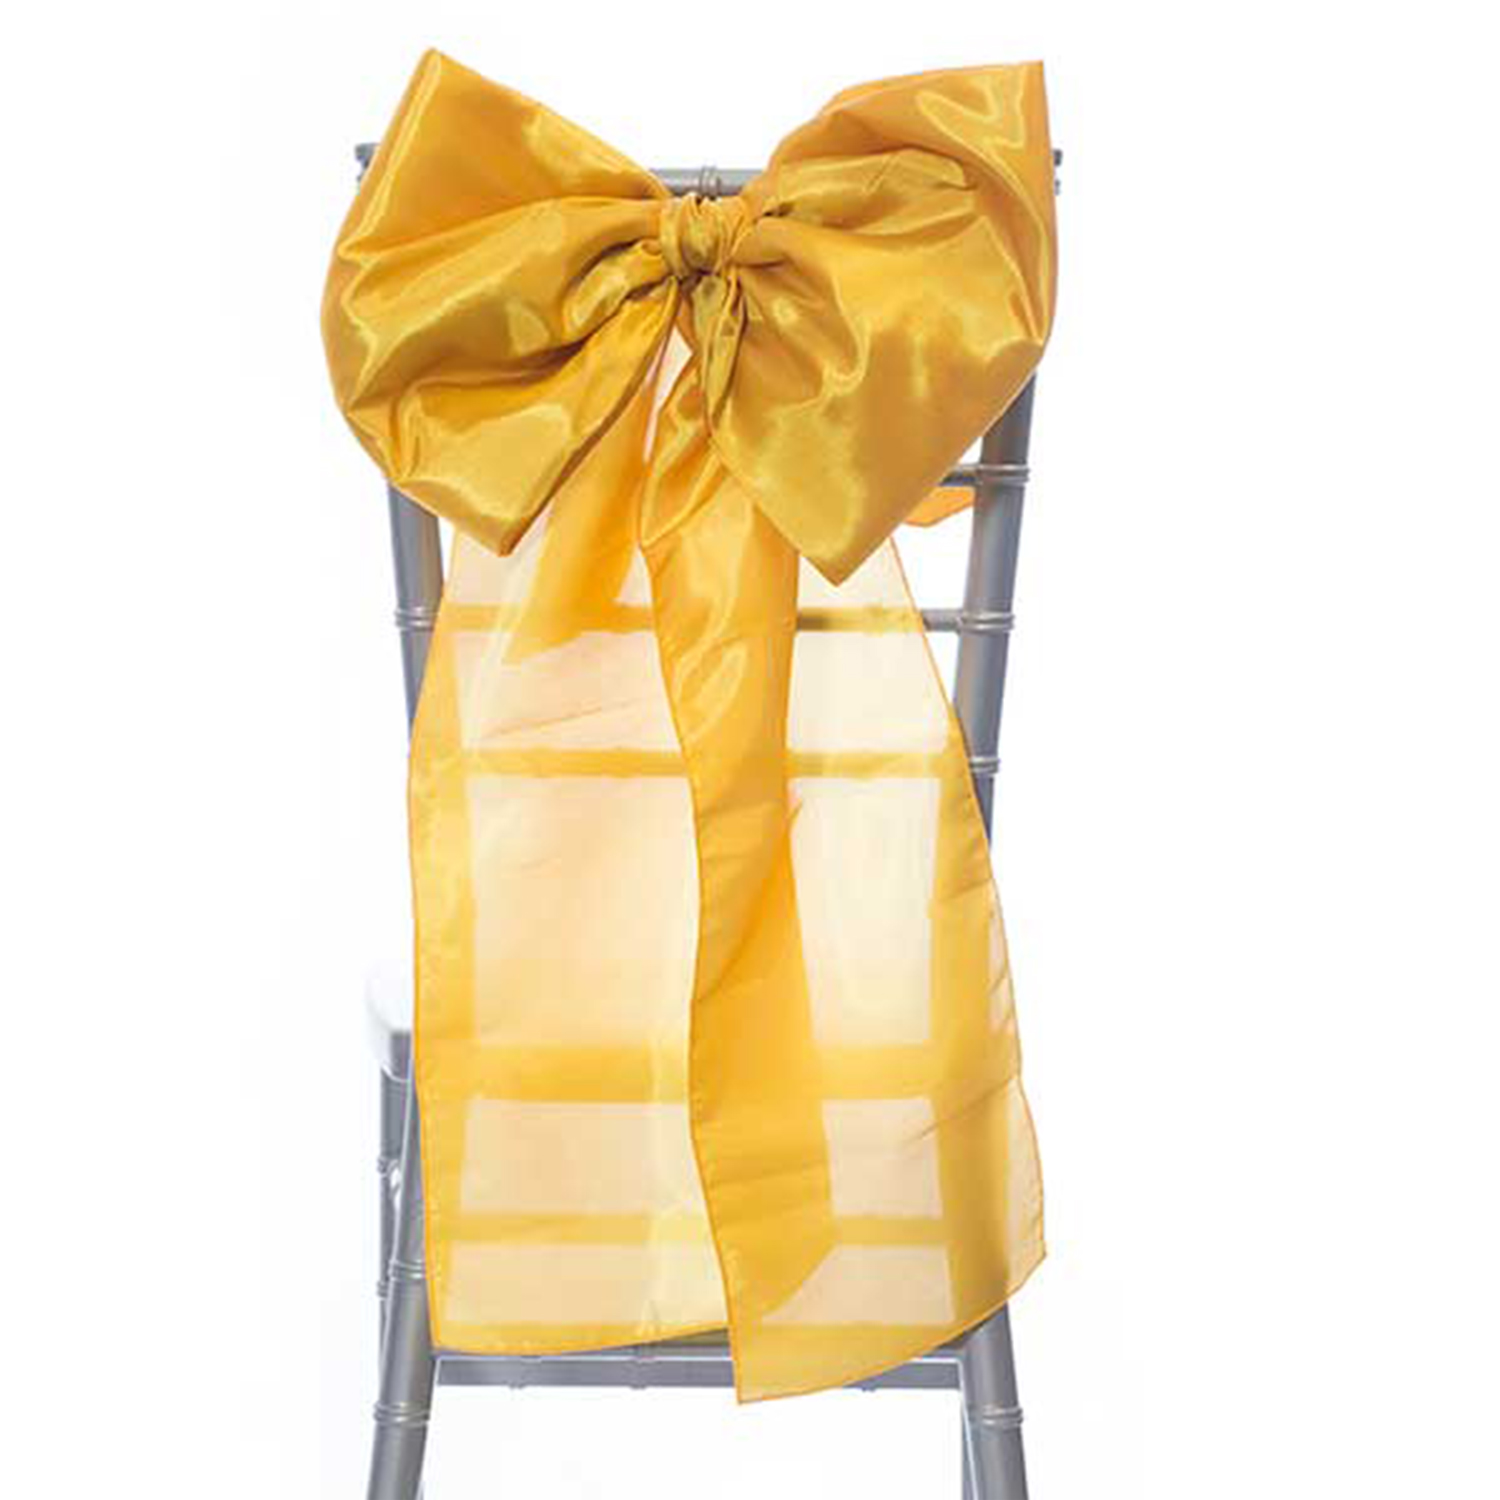 14 Taffeta Bow Chair Accent Gold